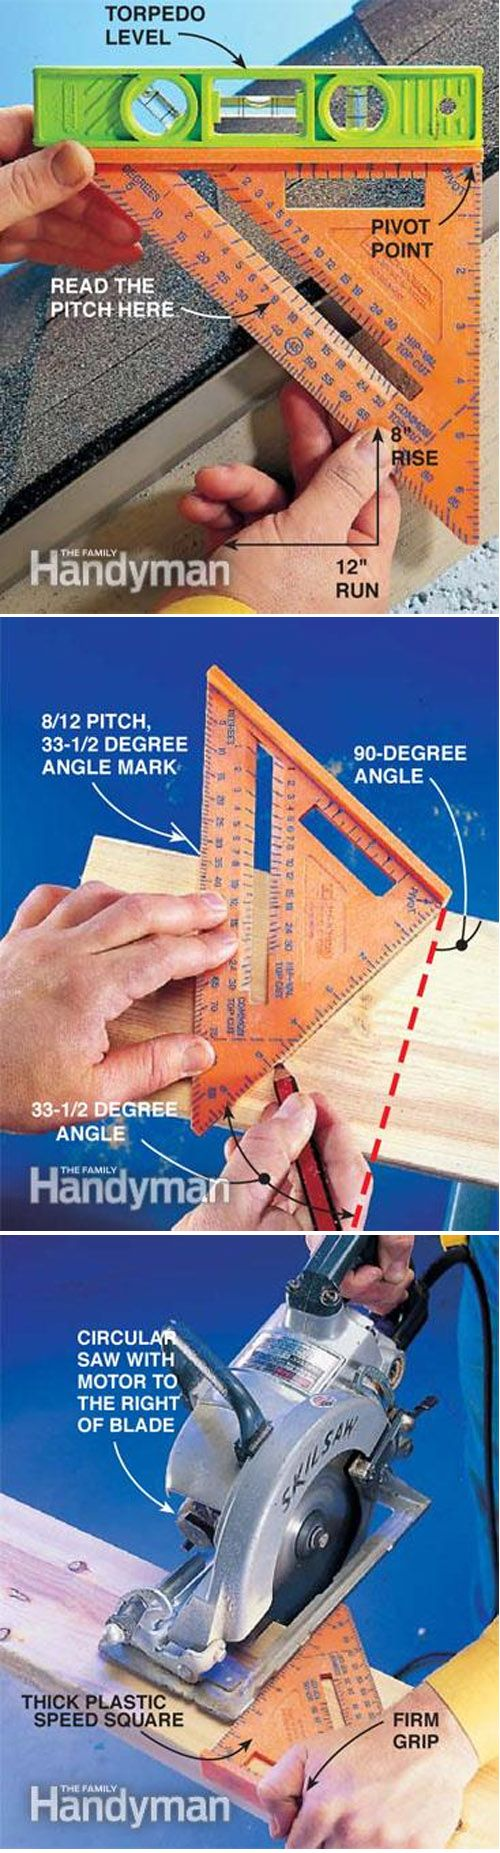 How to use your speed square http://www.familyhandyman.com/tools/how-to-use-a-speed-square/view-all